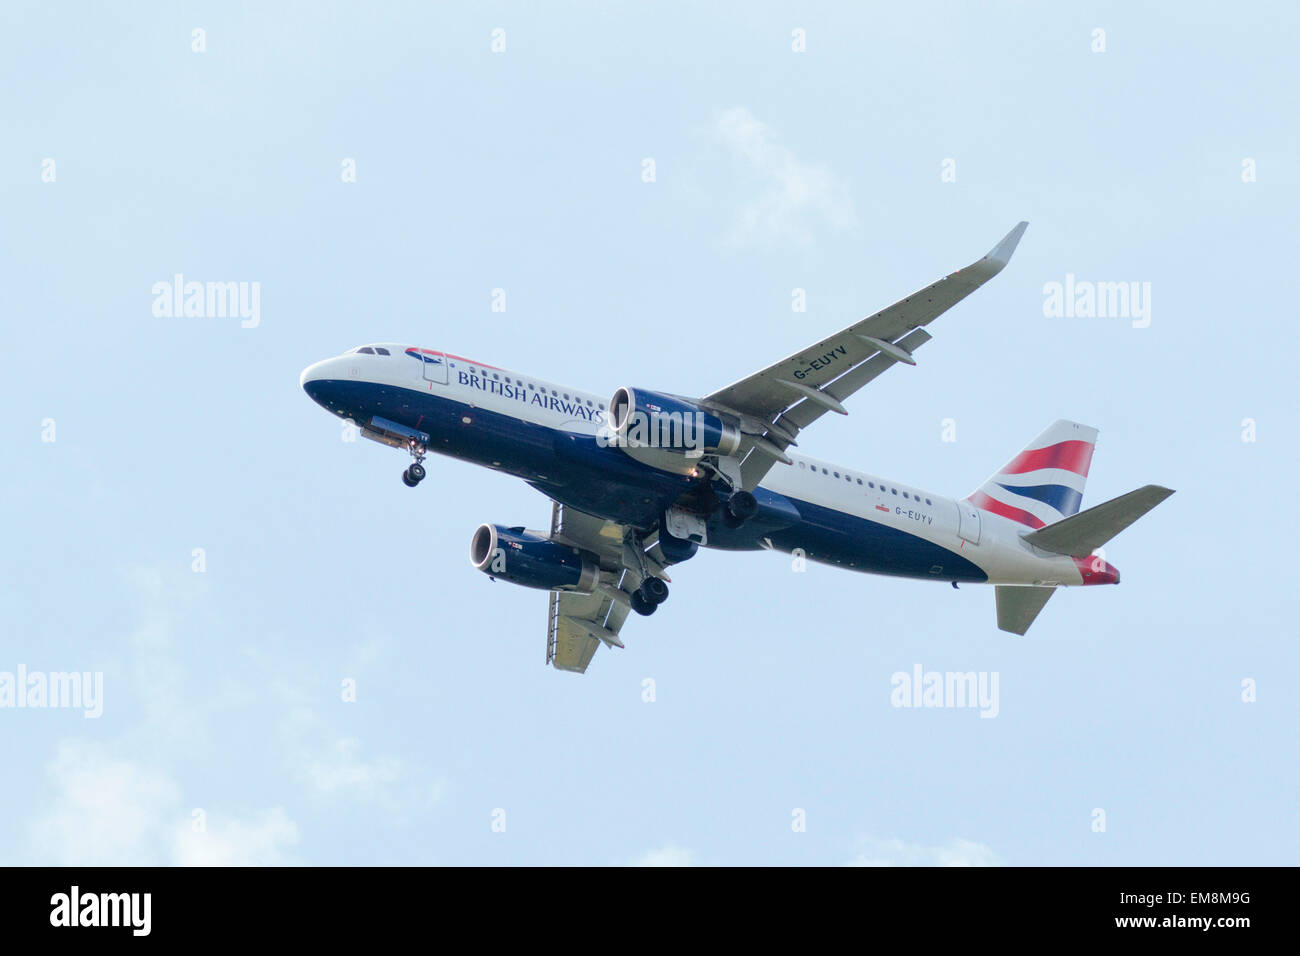 G-EUYV British Airways Airbus A320 - Stock Image